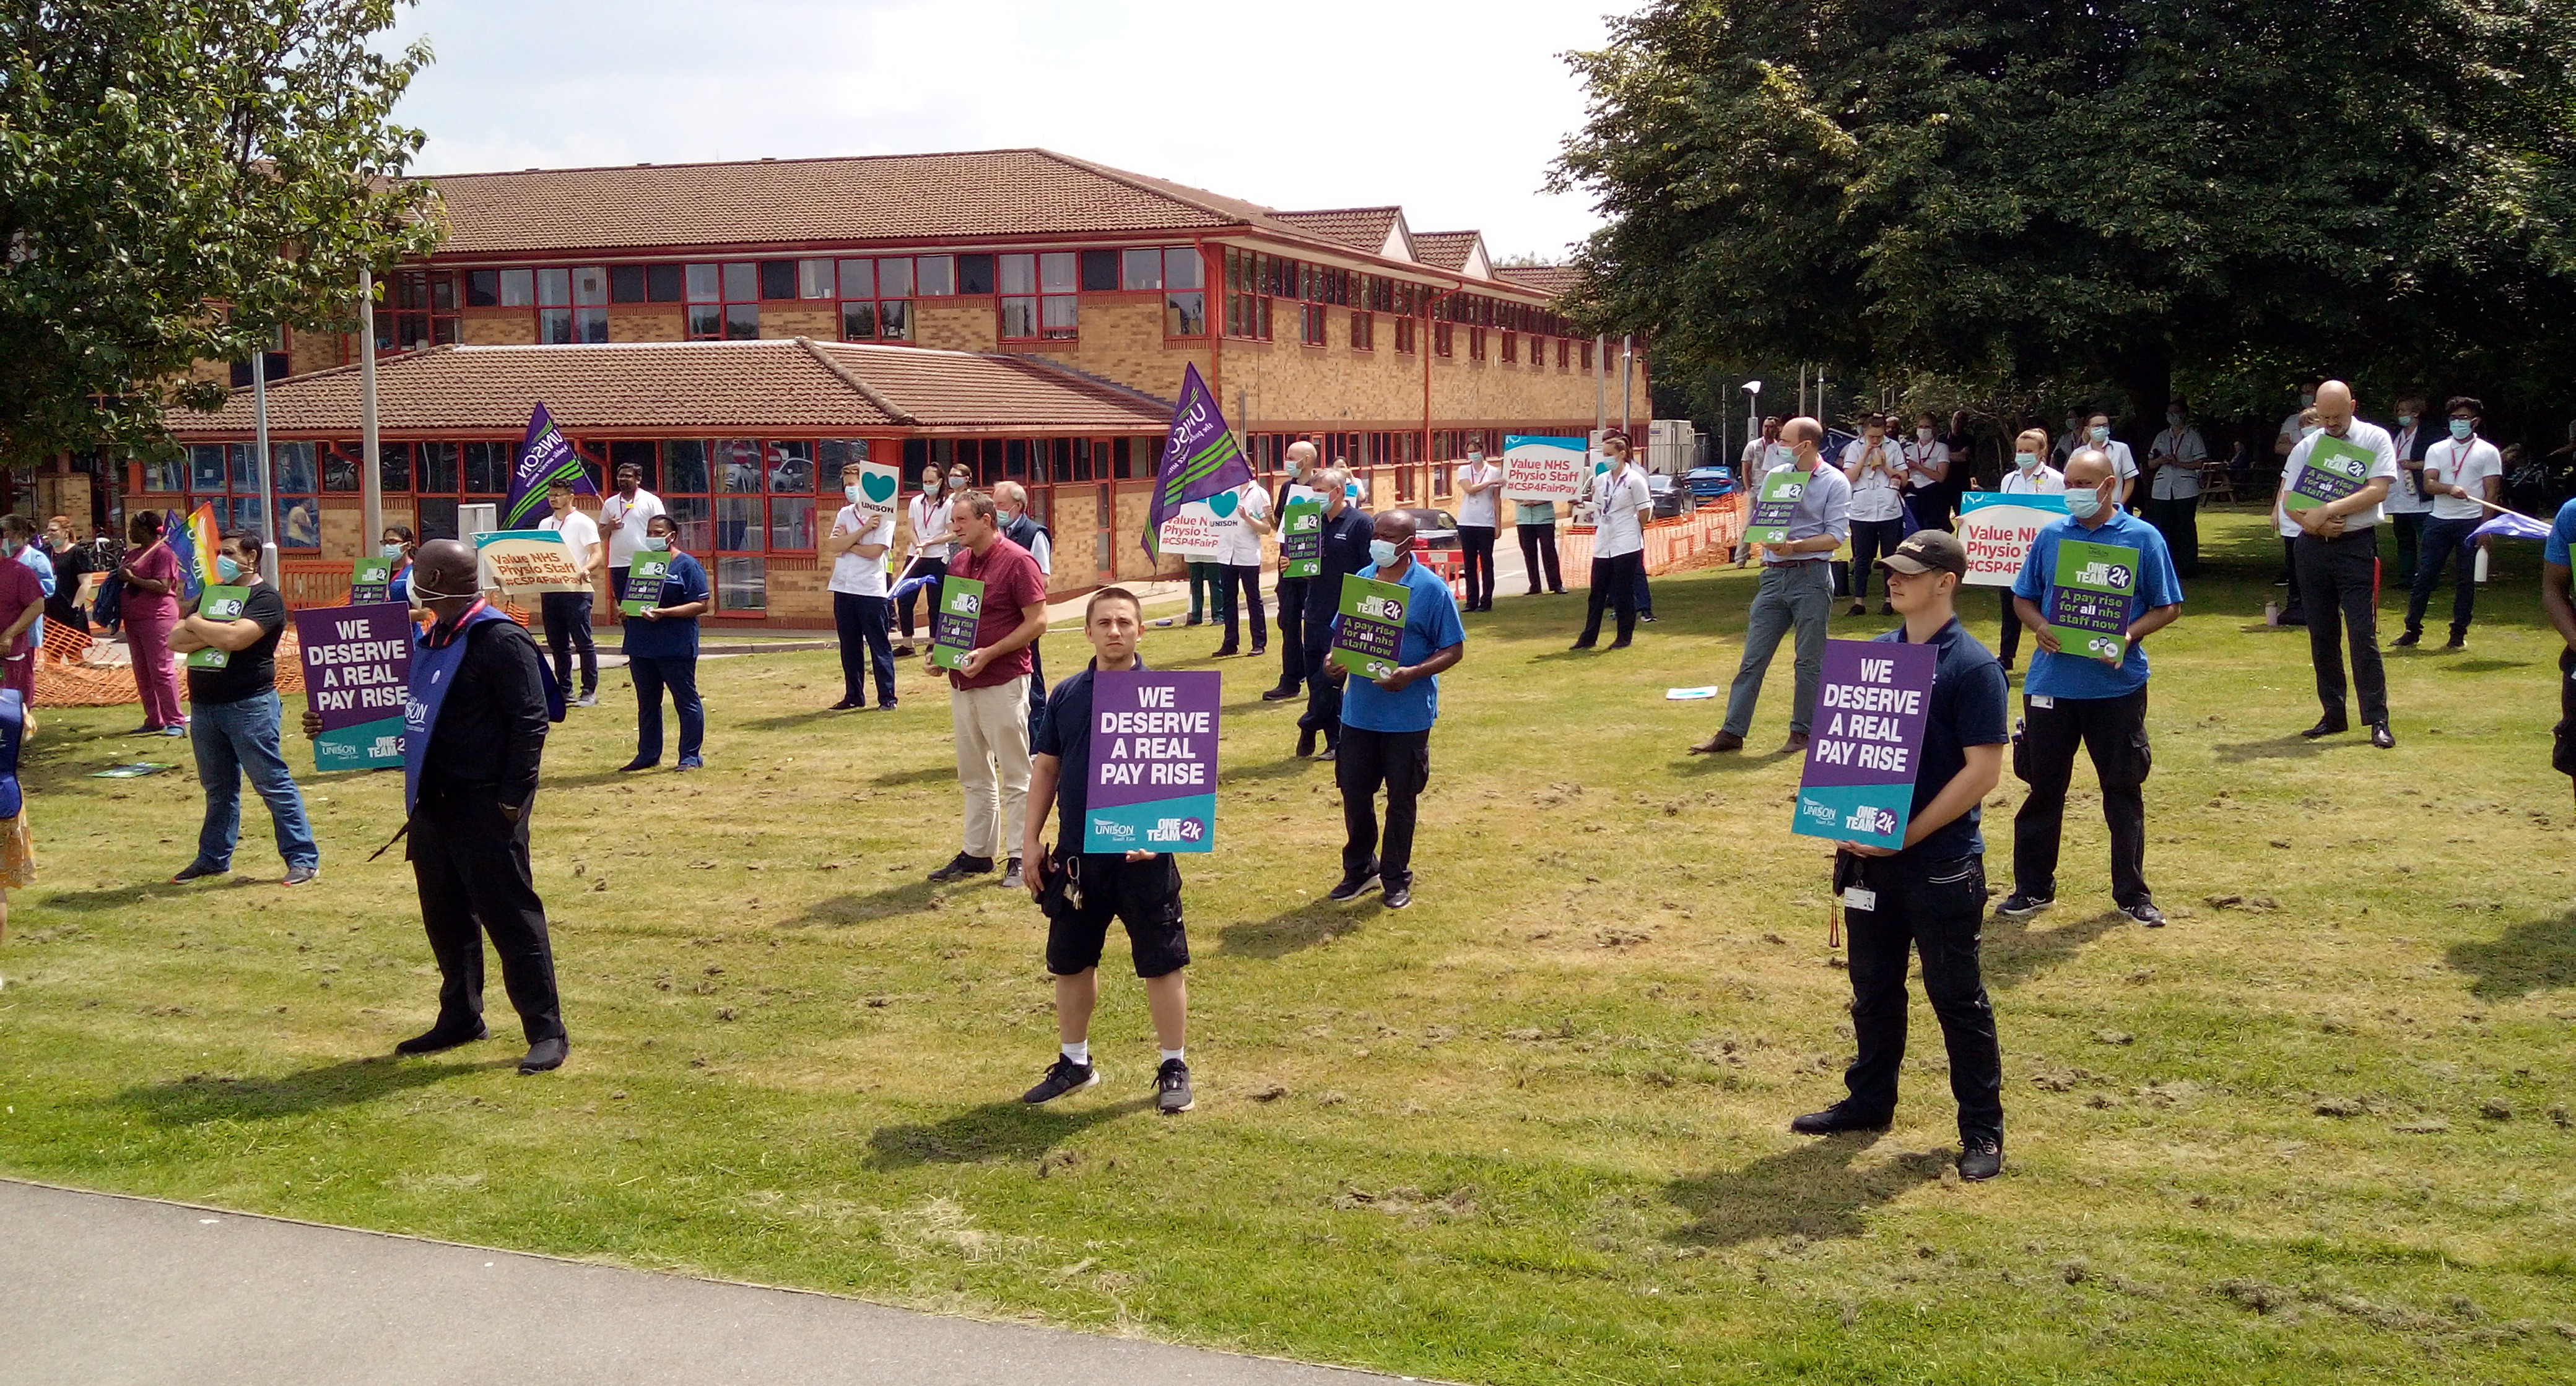 image of a large group of NHS staff standing outside taking part in a pay campaign activity. They are socially distanced so standing far apart from each other